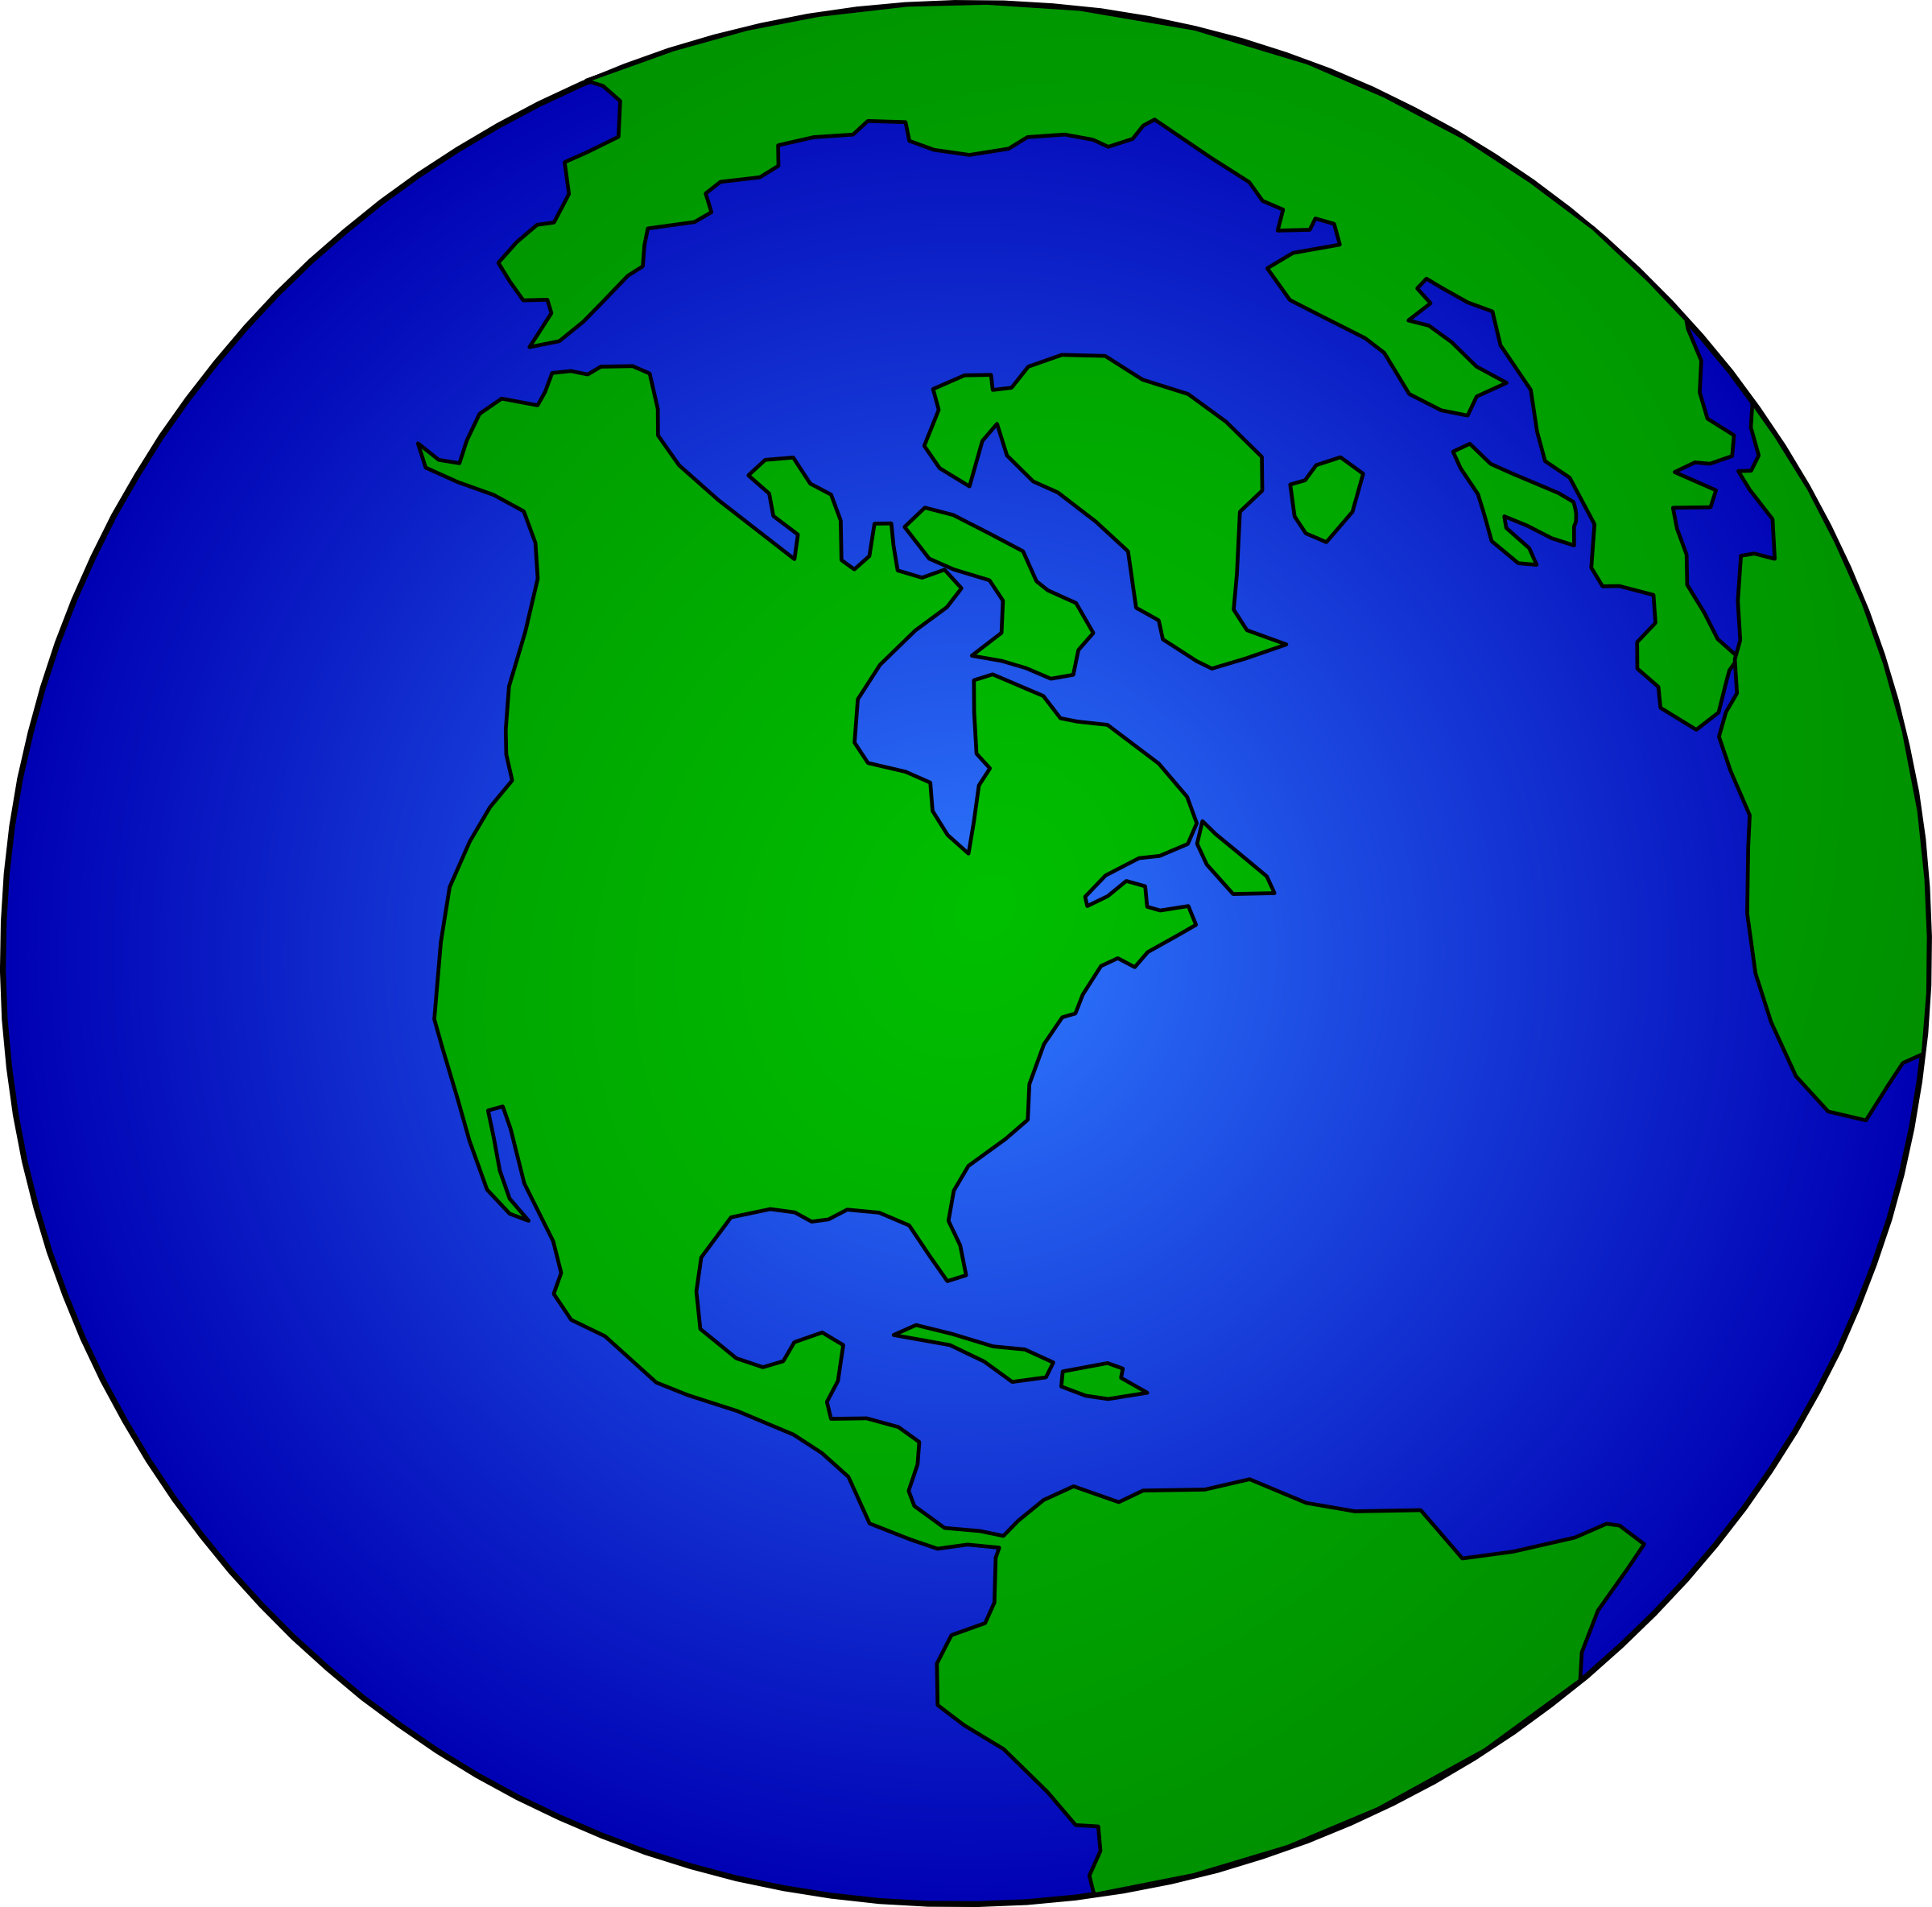 For globe clipart free images